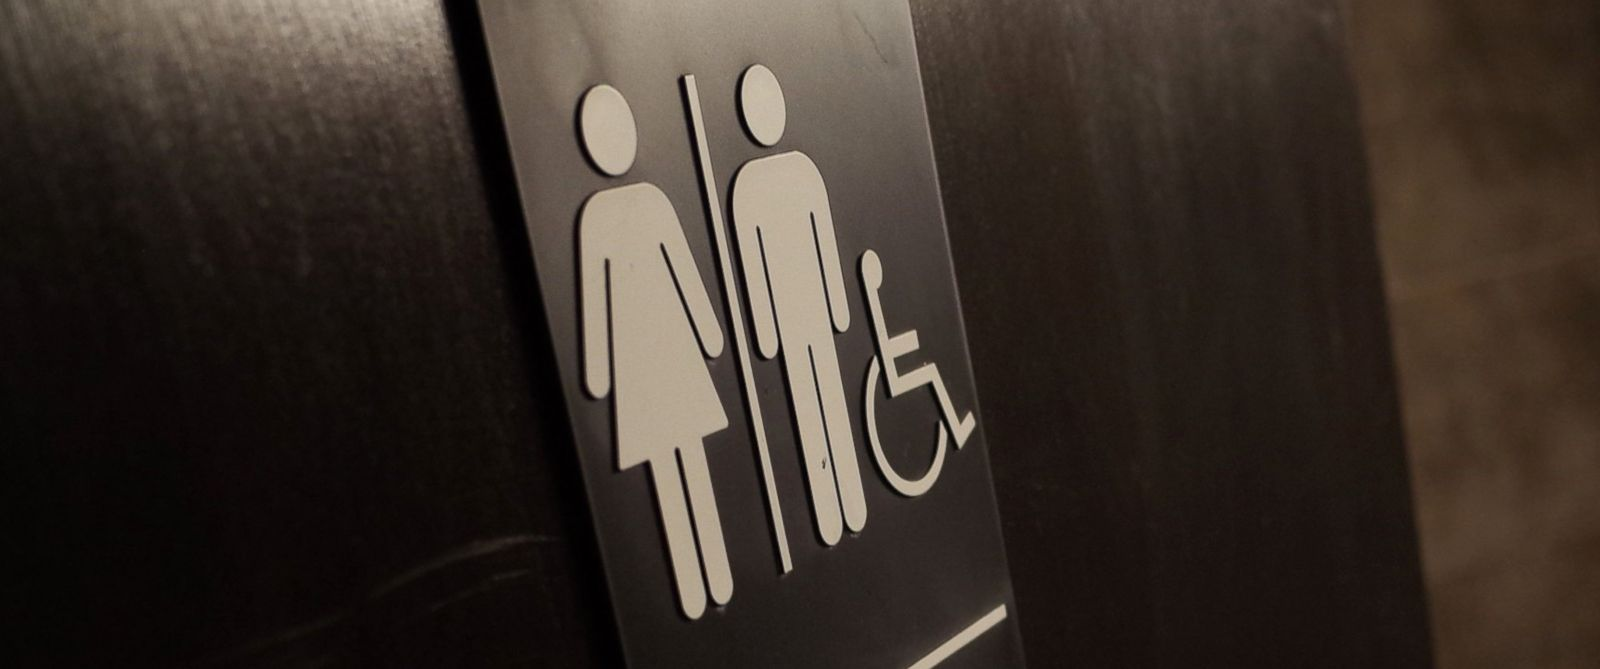 PHOTO: A gender neutral bathroom is seen at a coffee shop in Washington, D.C., on May 5, 2016.